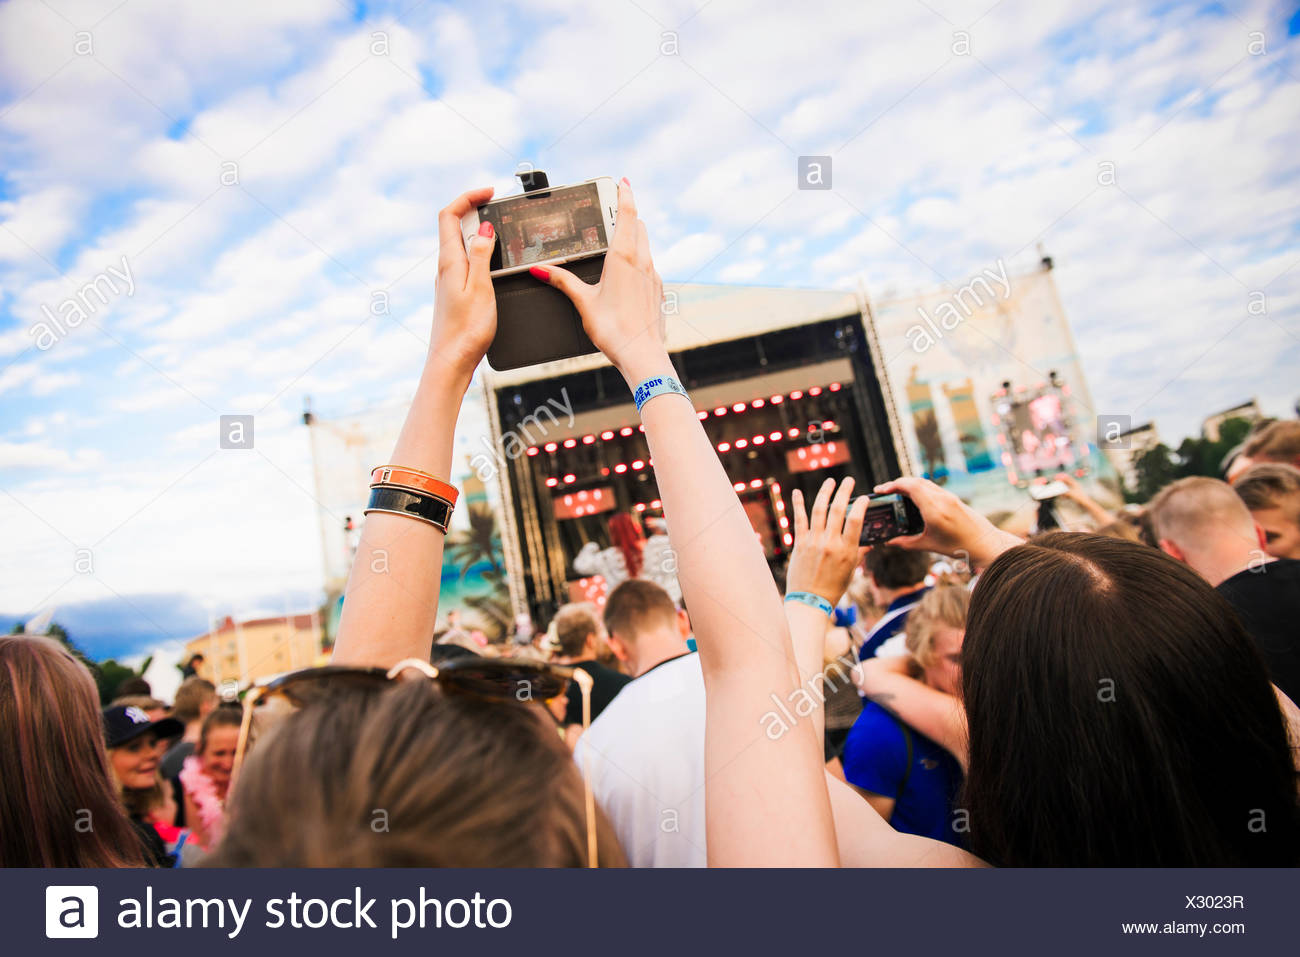 Finland, Satakunta, Rauma, People having fun at pop concert - Stock Image